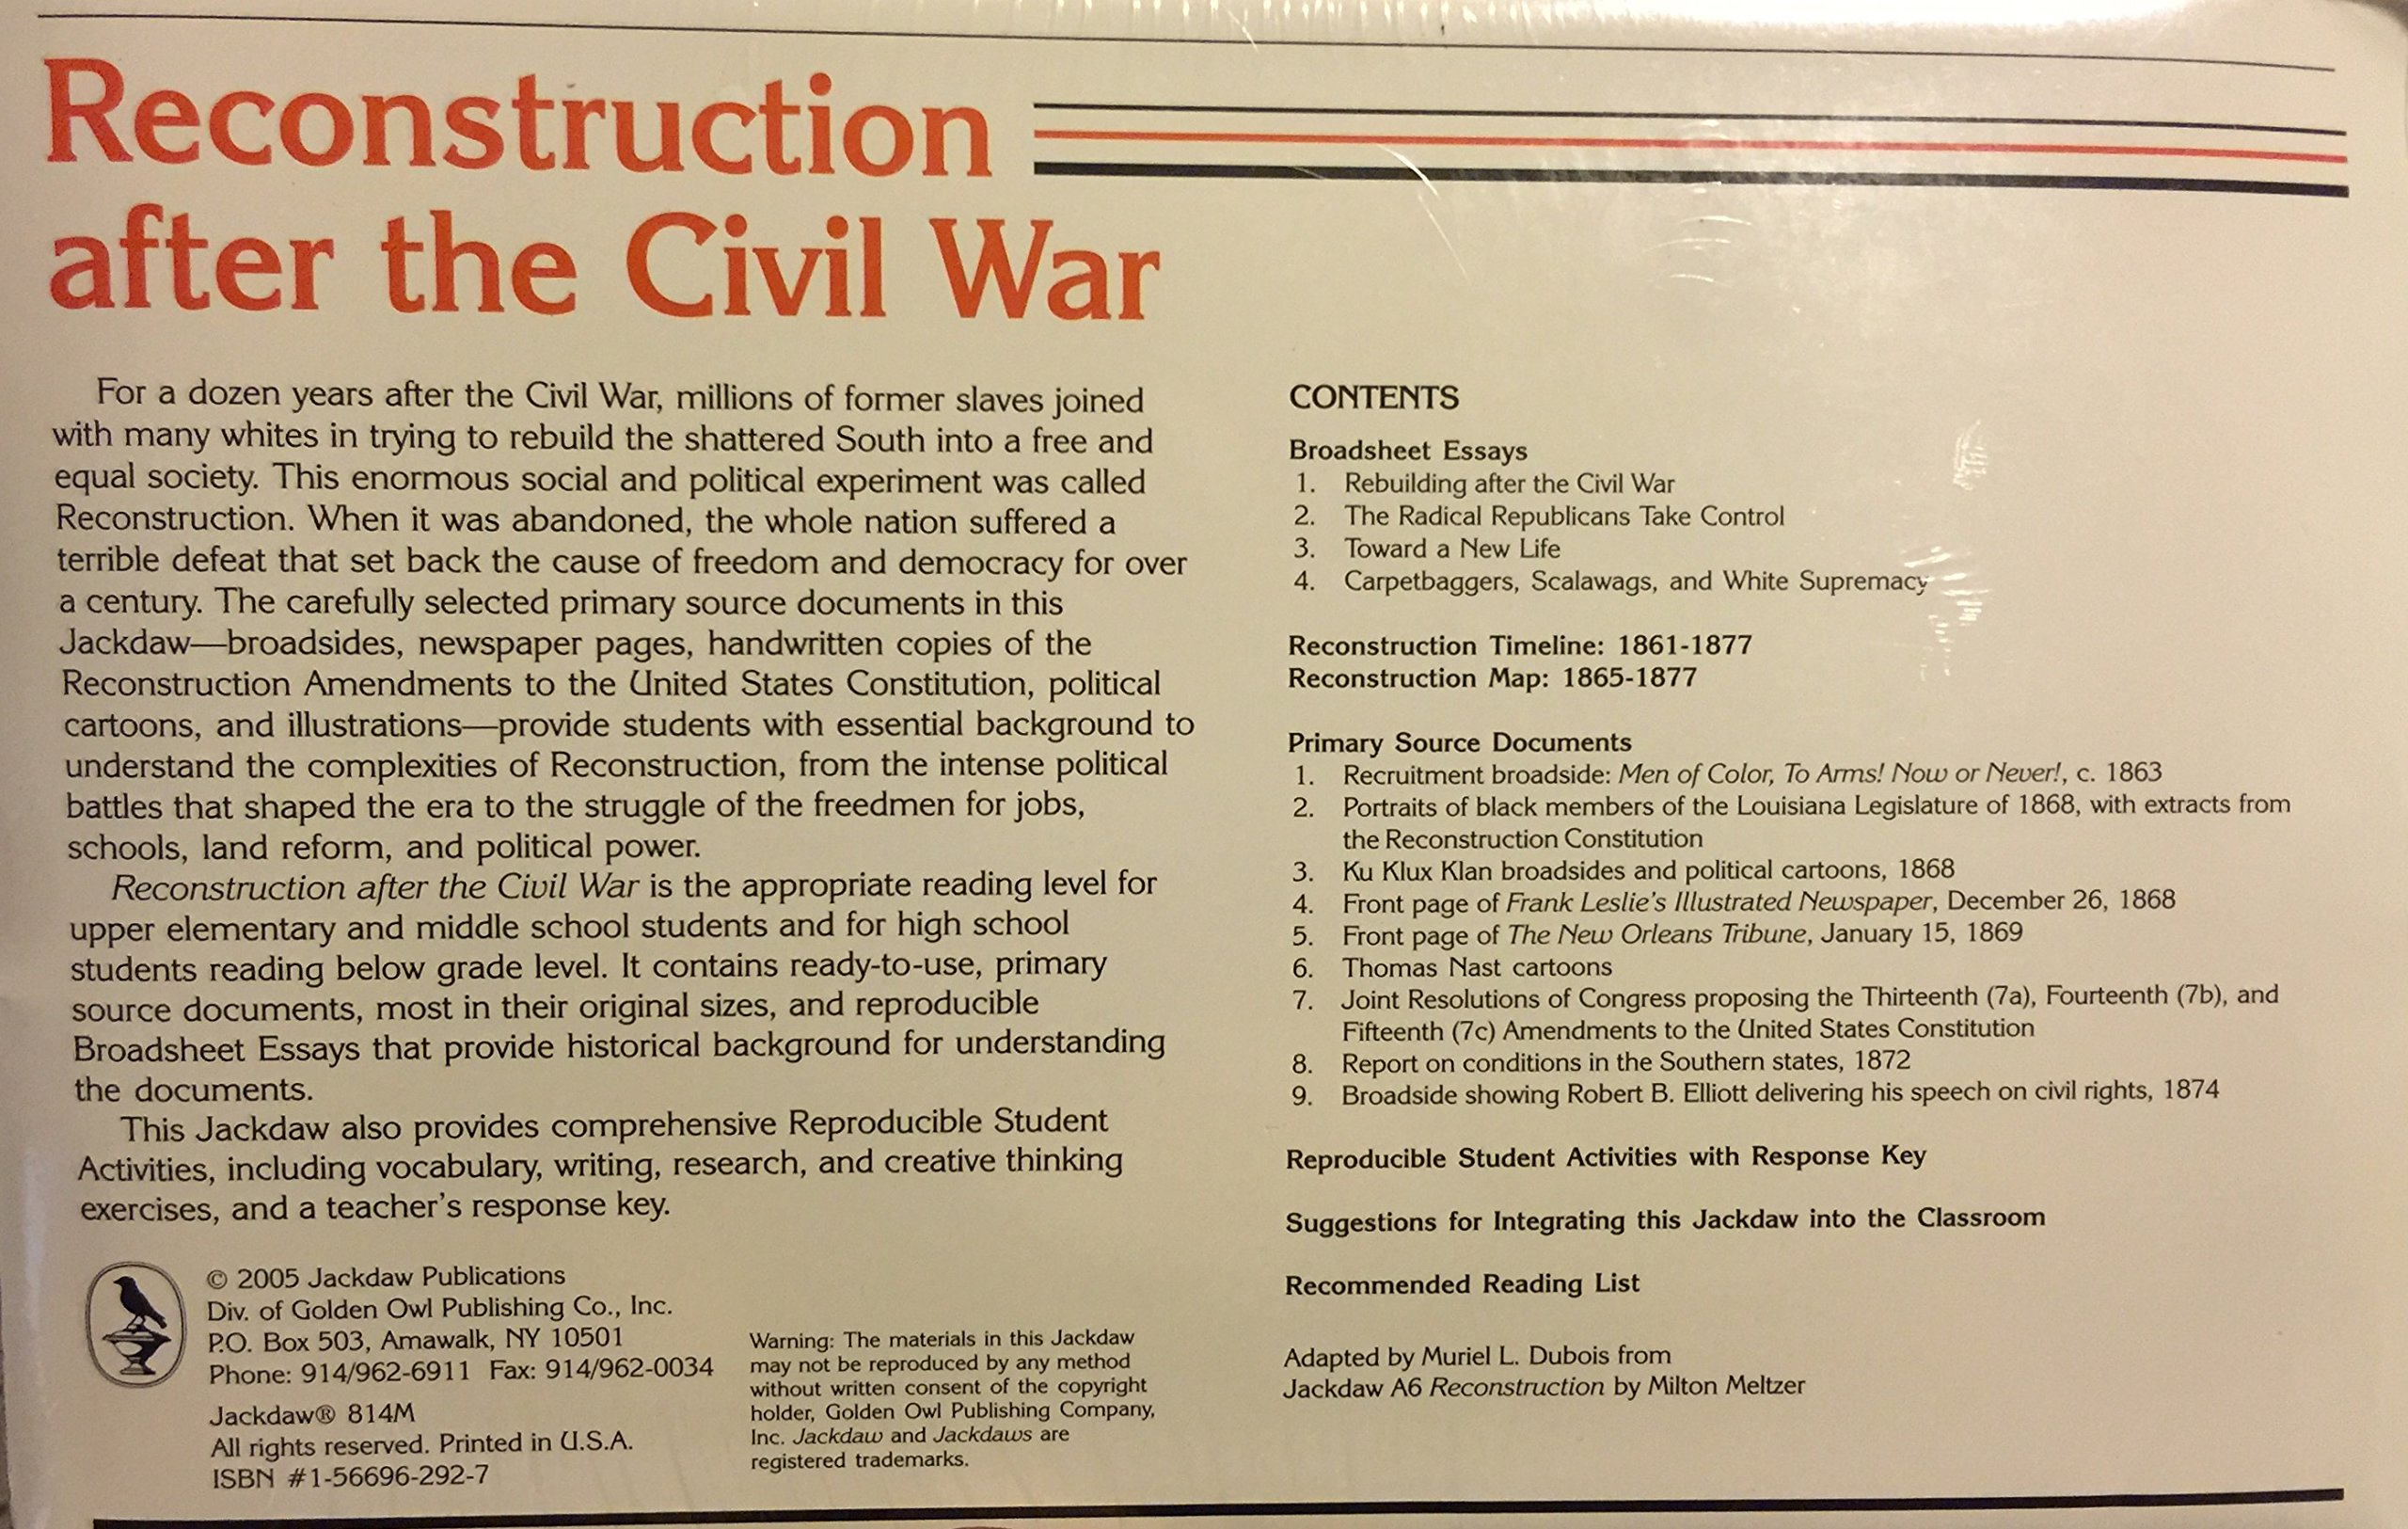 Amazoncom Reconstruction After The Civil War   Amazoncom Reconstruction After The Civil War  Milton  Meltzer Books Research Sources Online also Paper Vs Essay  Essays On Science And Technology